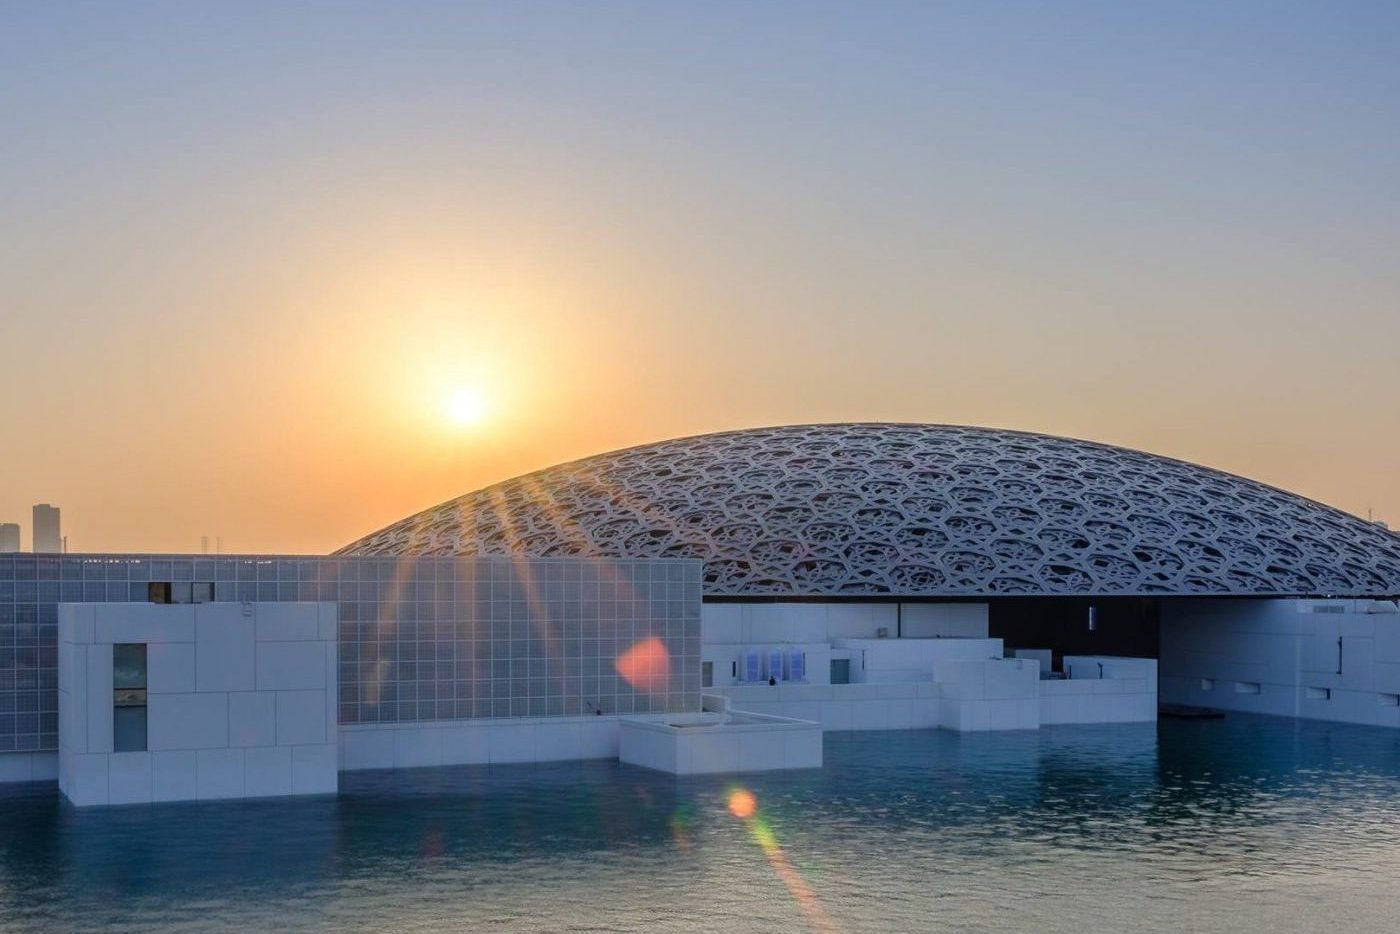 Evolution of How Art Shaped Society and Change: Louvre Abu Dhabi's Mission of Unity and Peace Through Artistic Expression